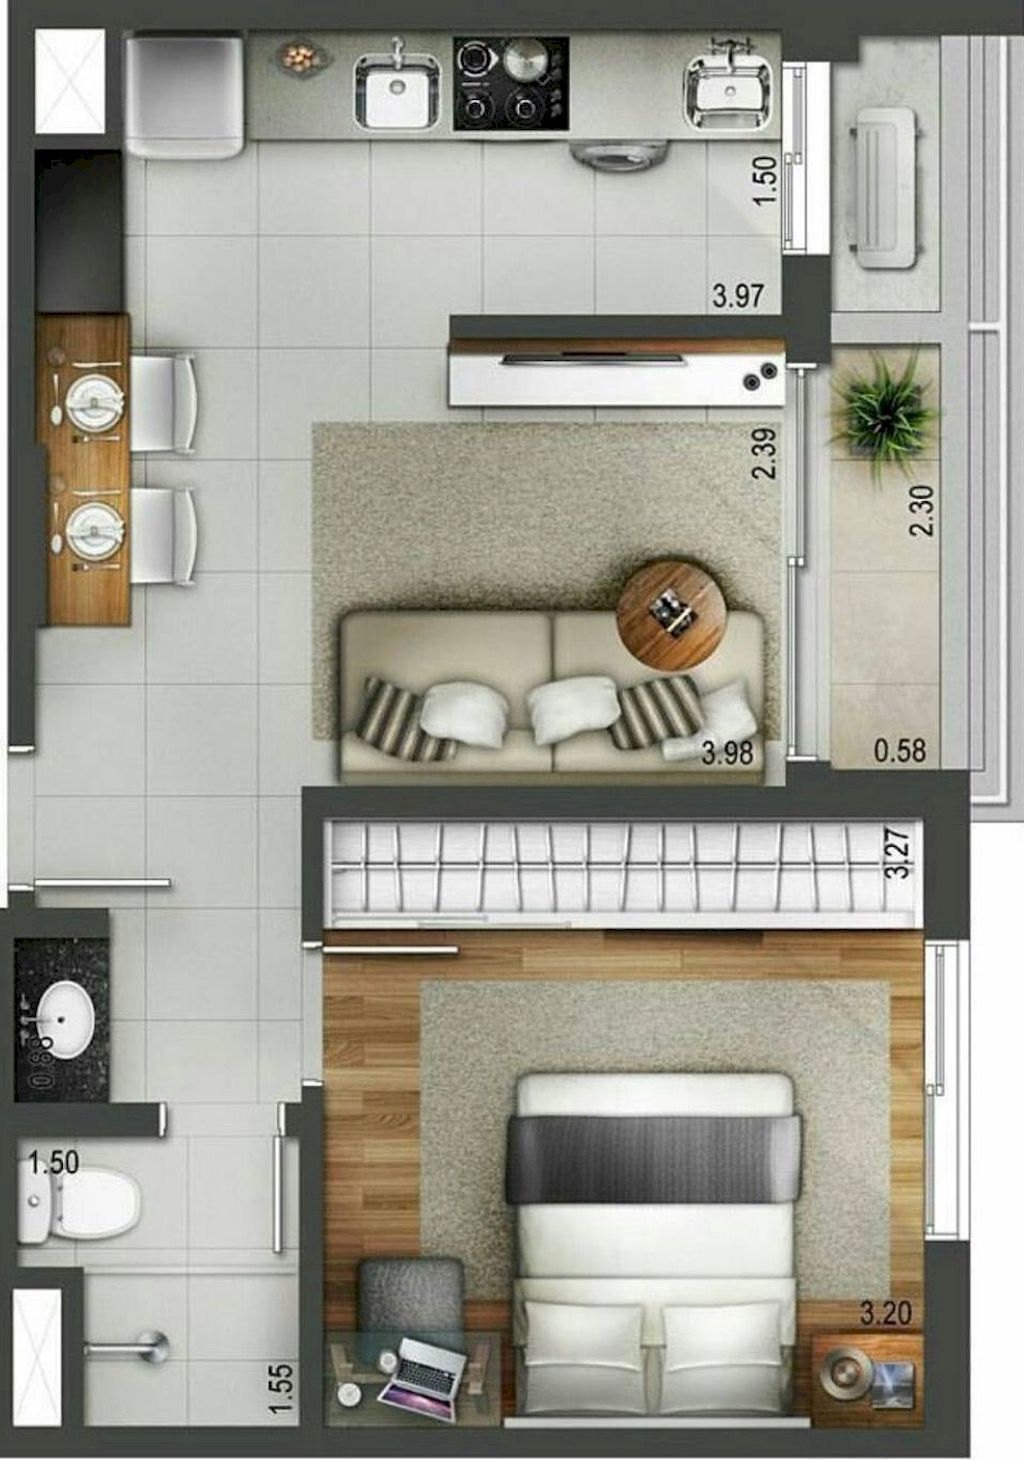 100 Small Studio Apartment Layout Design Ideas Home Design Denah Rumah Ide Apartemen Rumah Kontainer